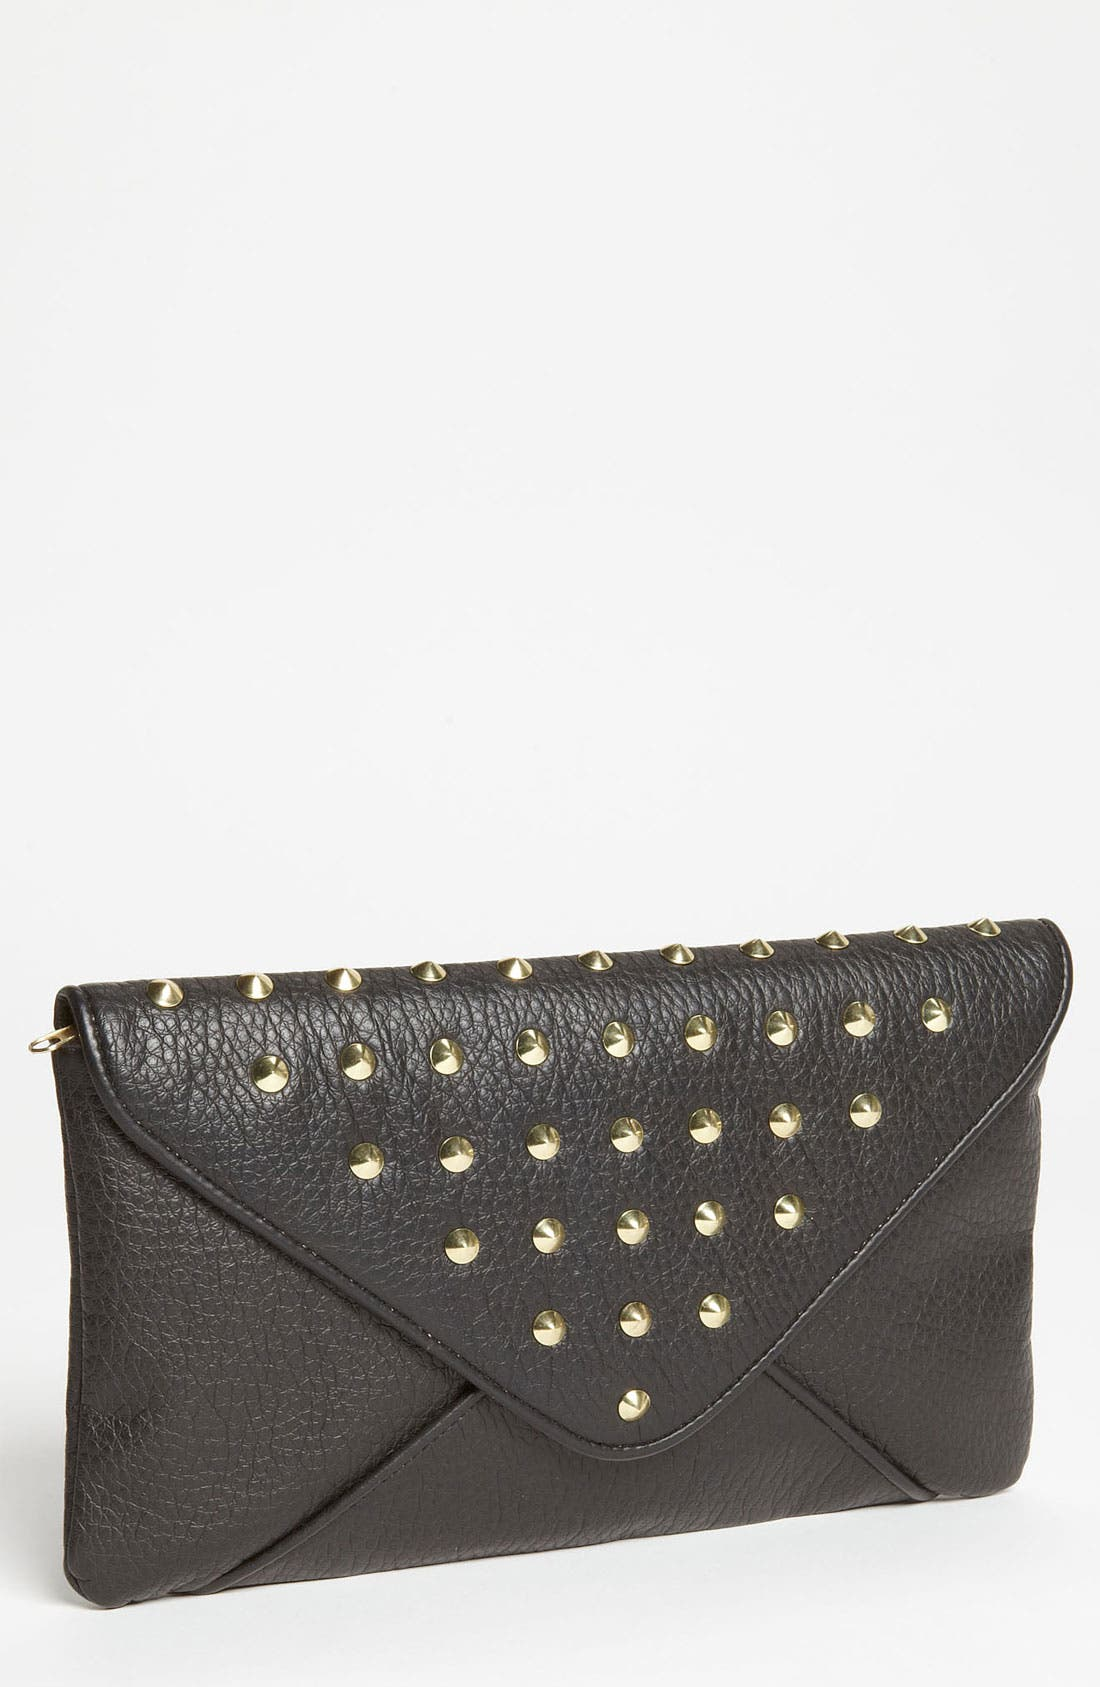 Main Image - Lulu Studded Envelope Clutch